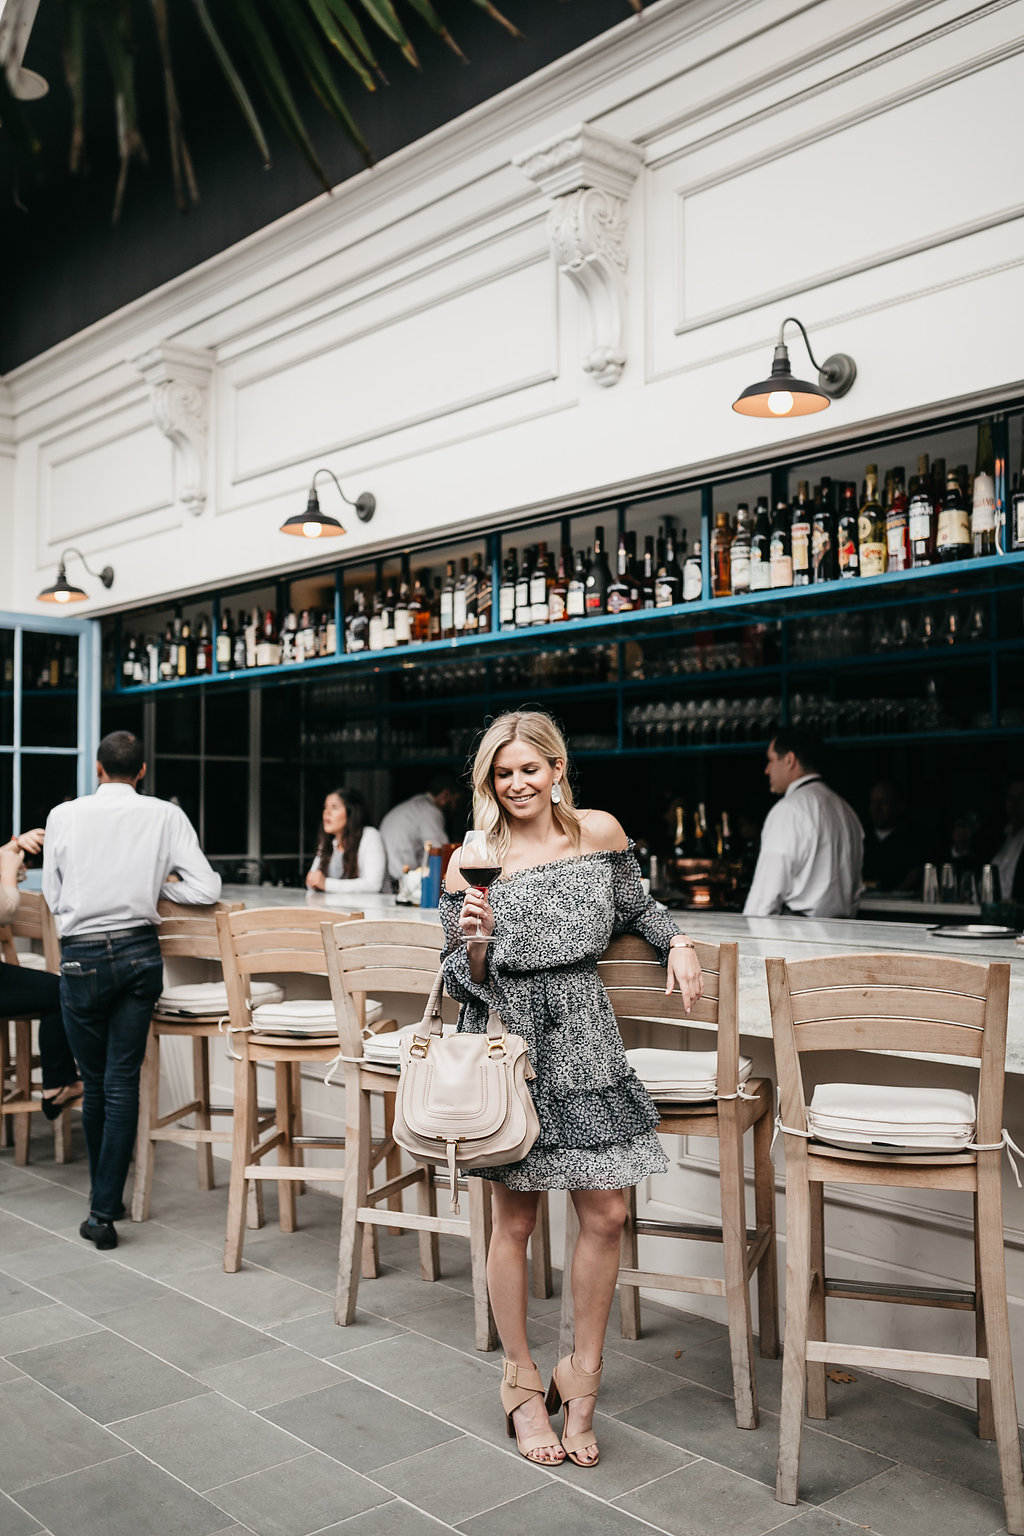 Dallas fashion blogger at Dolce Riviera in Harwood district